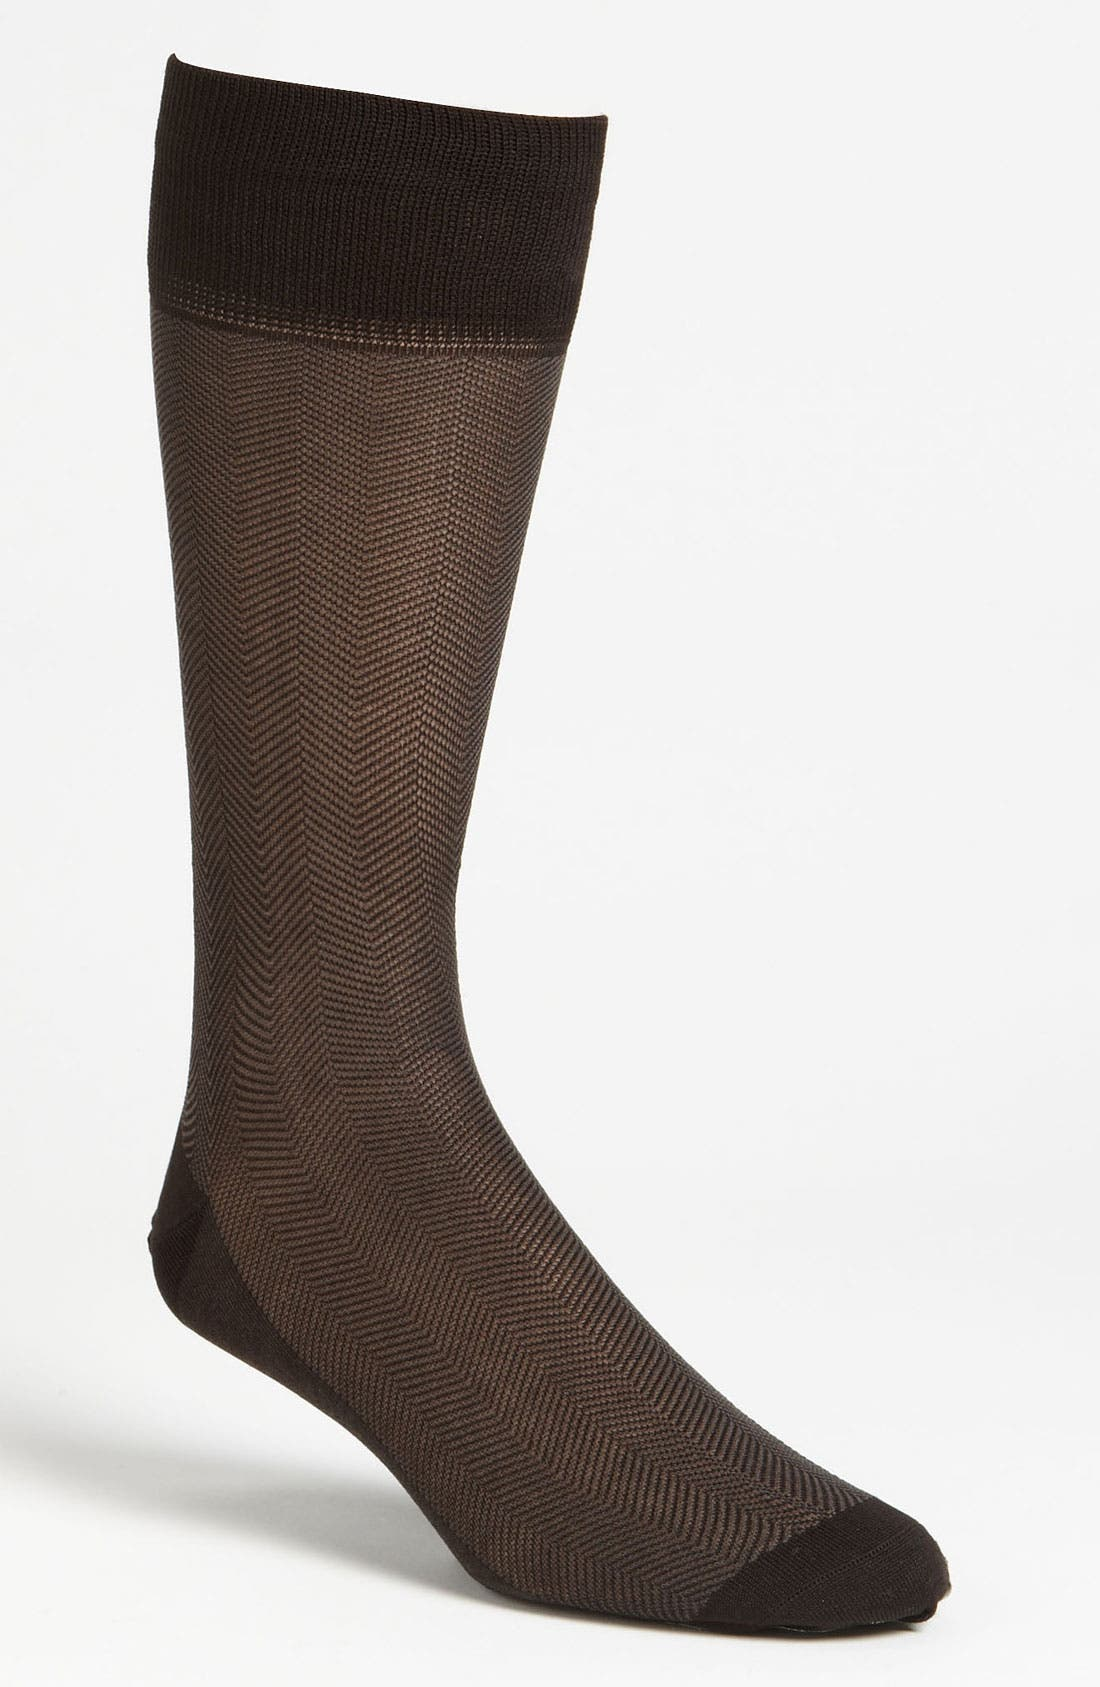 Alternate Image 1 Selected - Calibrate Herringbone Socks